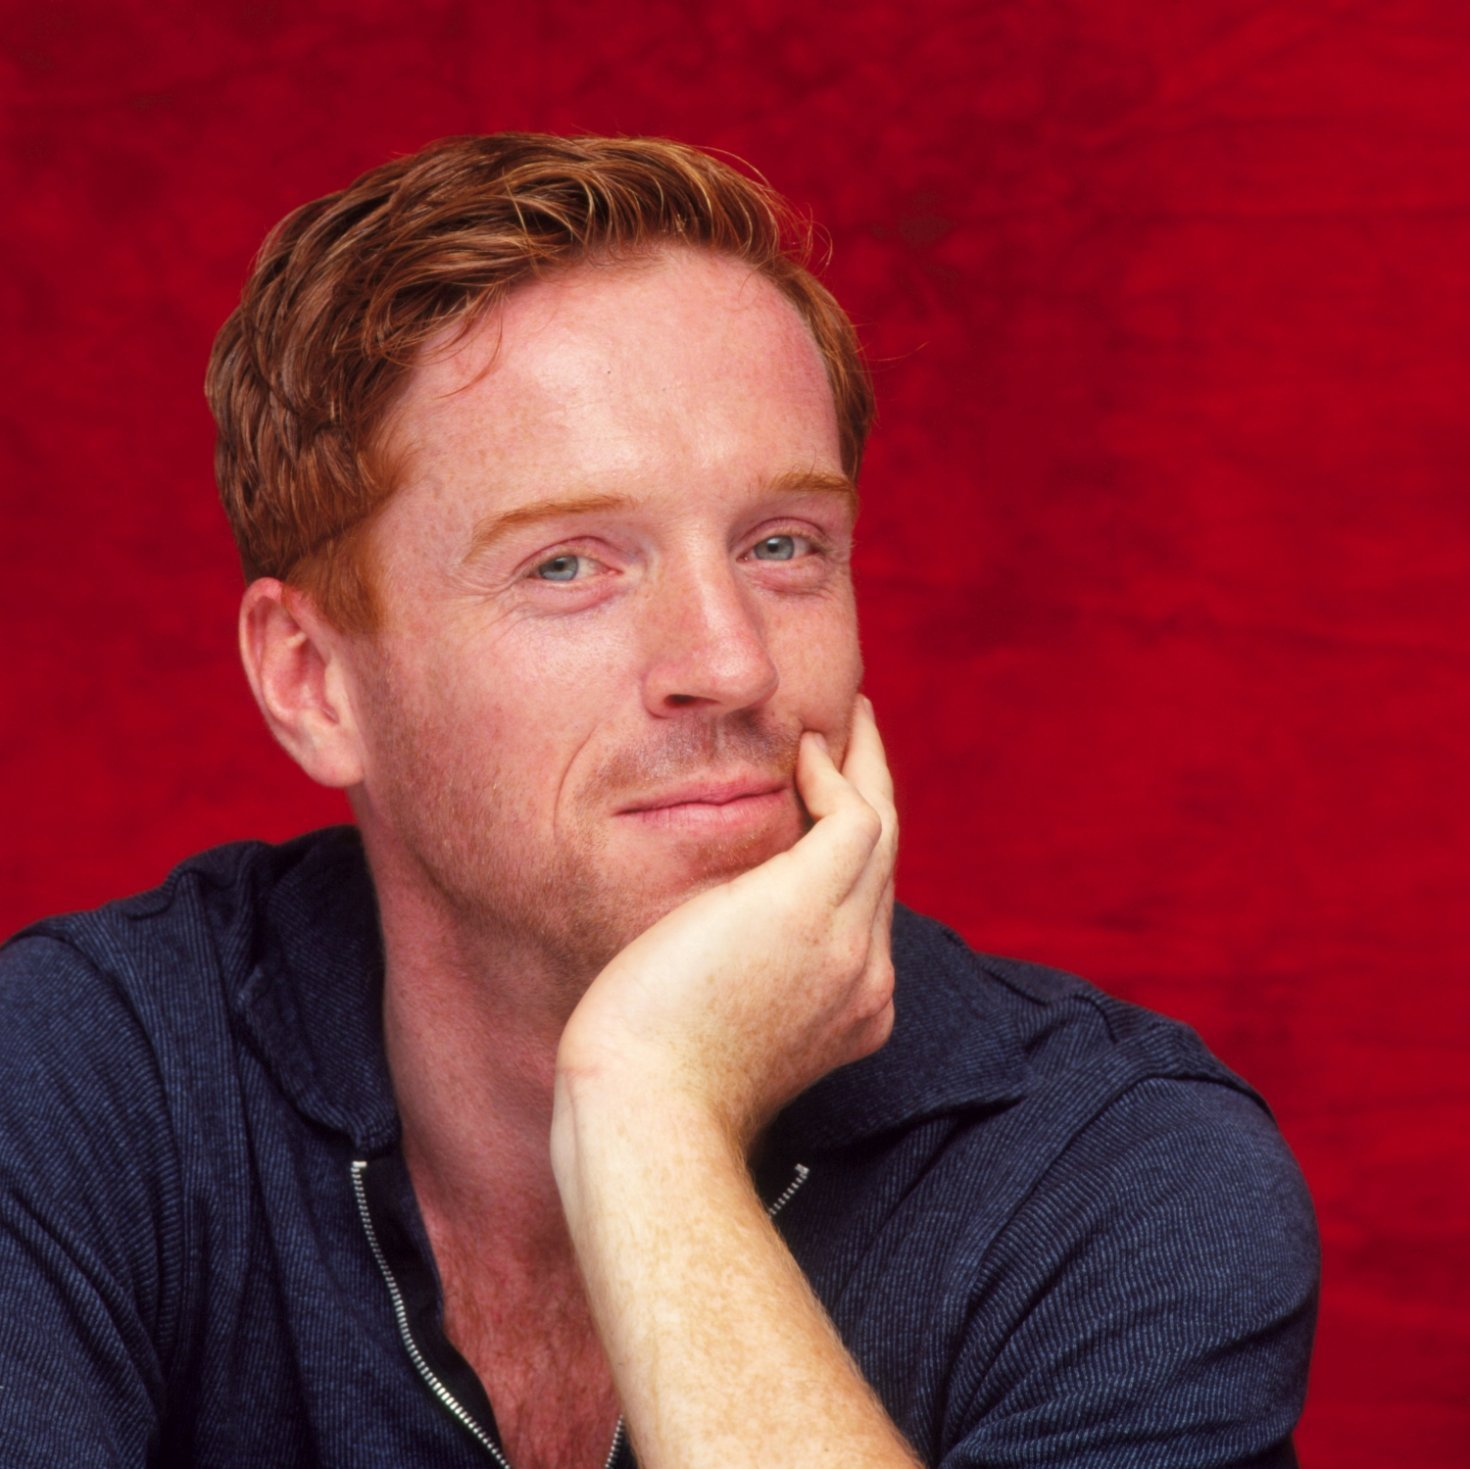 The Ginger Blog Man: Hot Ginger of the Week: Damien Lewis